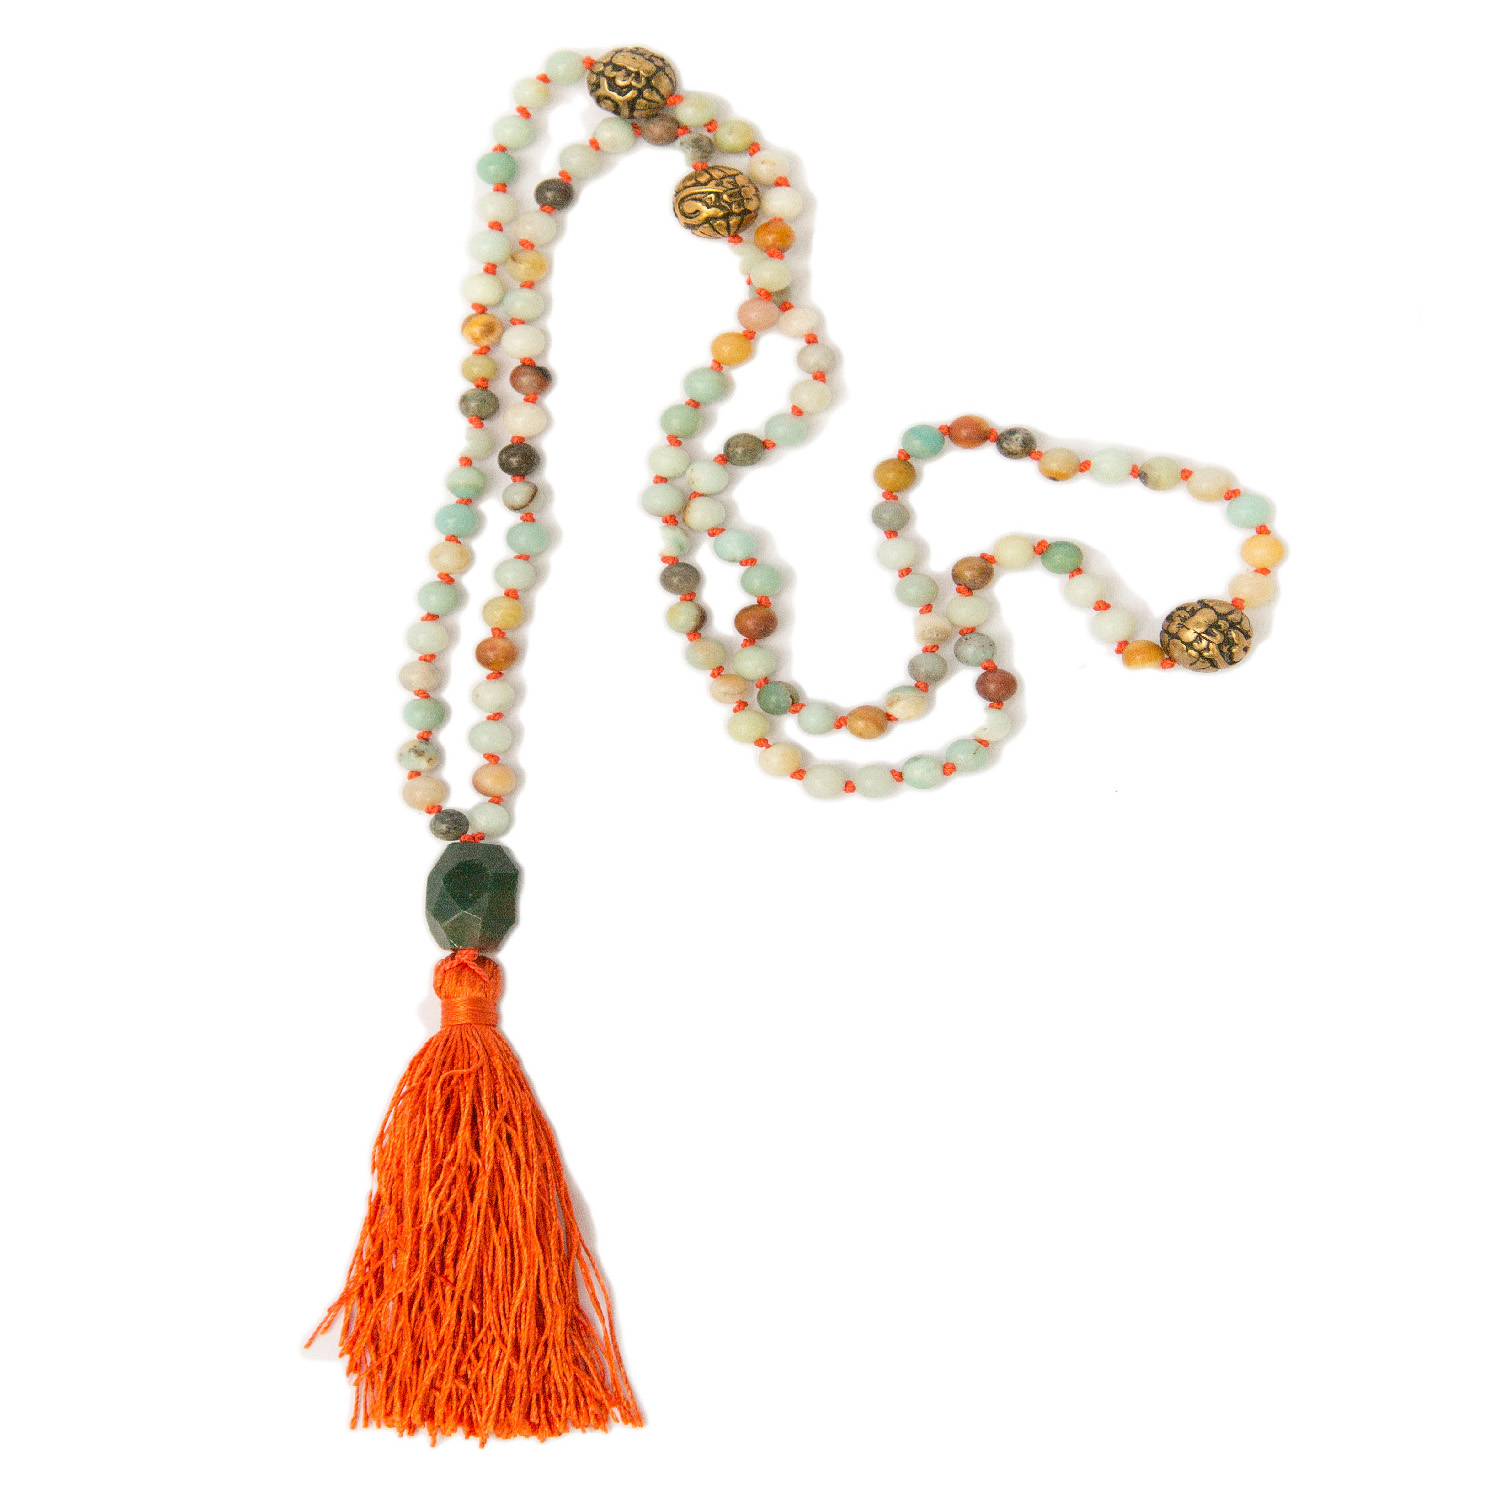 - Learn the Zen art of silk knotting. This technique is traditionally used for pearls but can be applied to other beads as well. In this class you will create your very own elegant